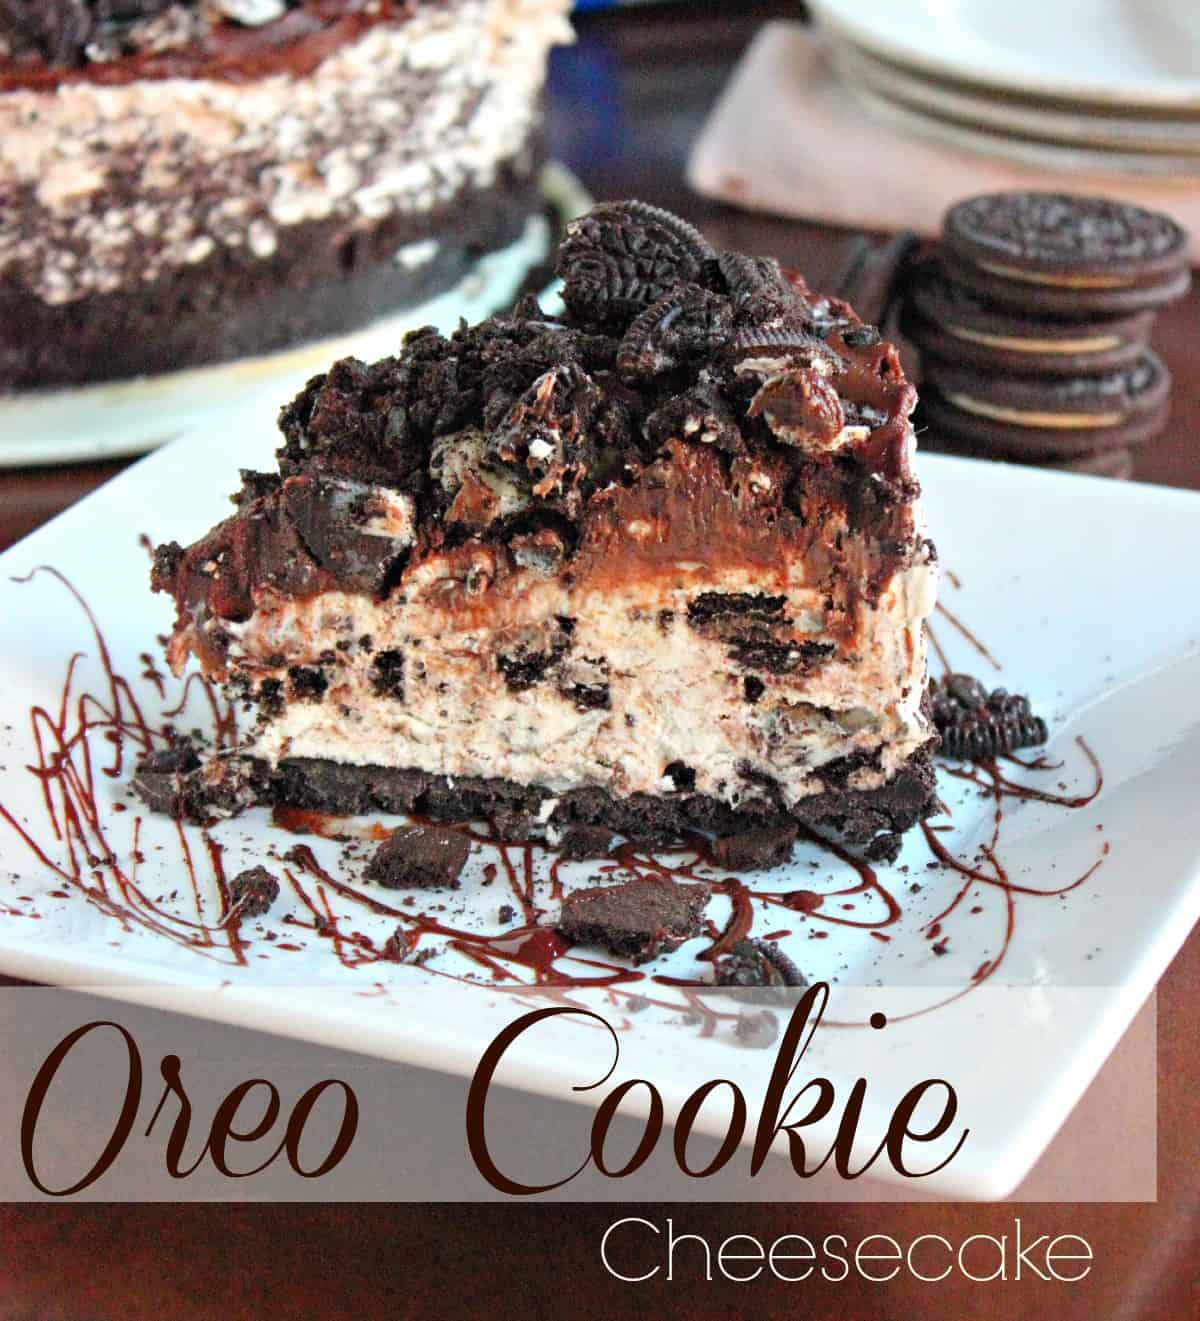 Non Bake Oreo Cheesecake